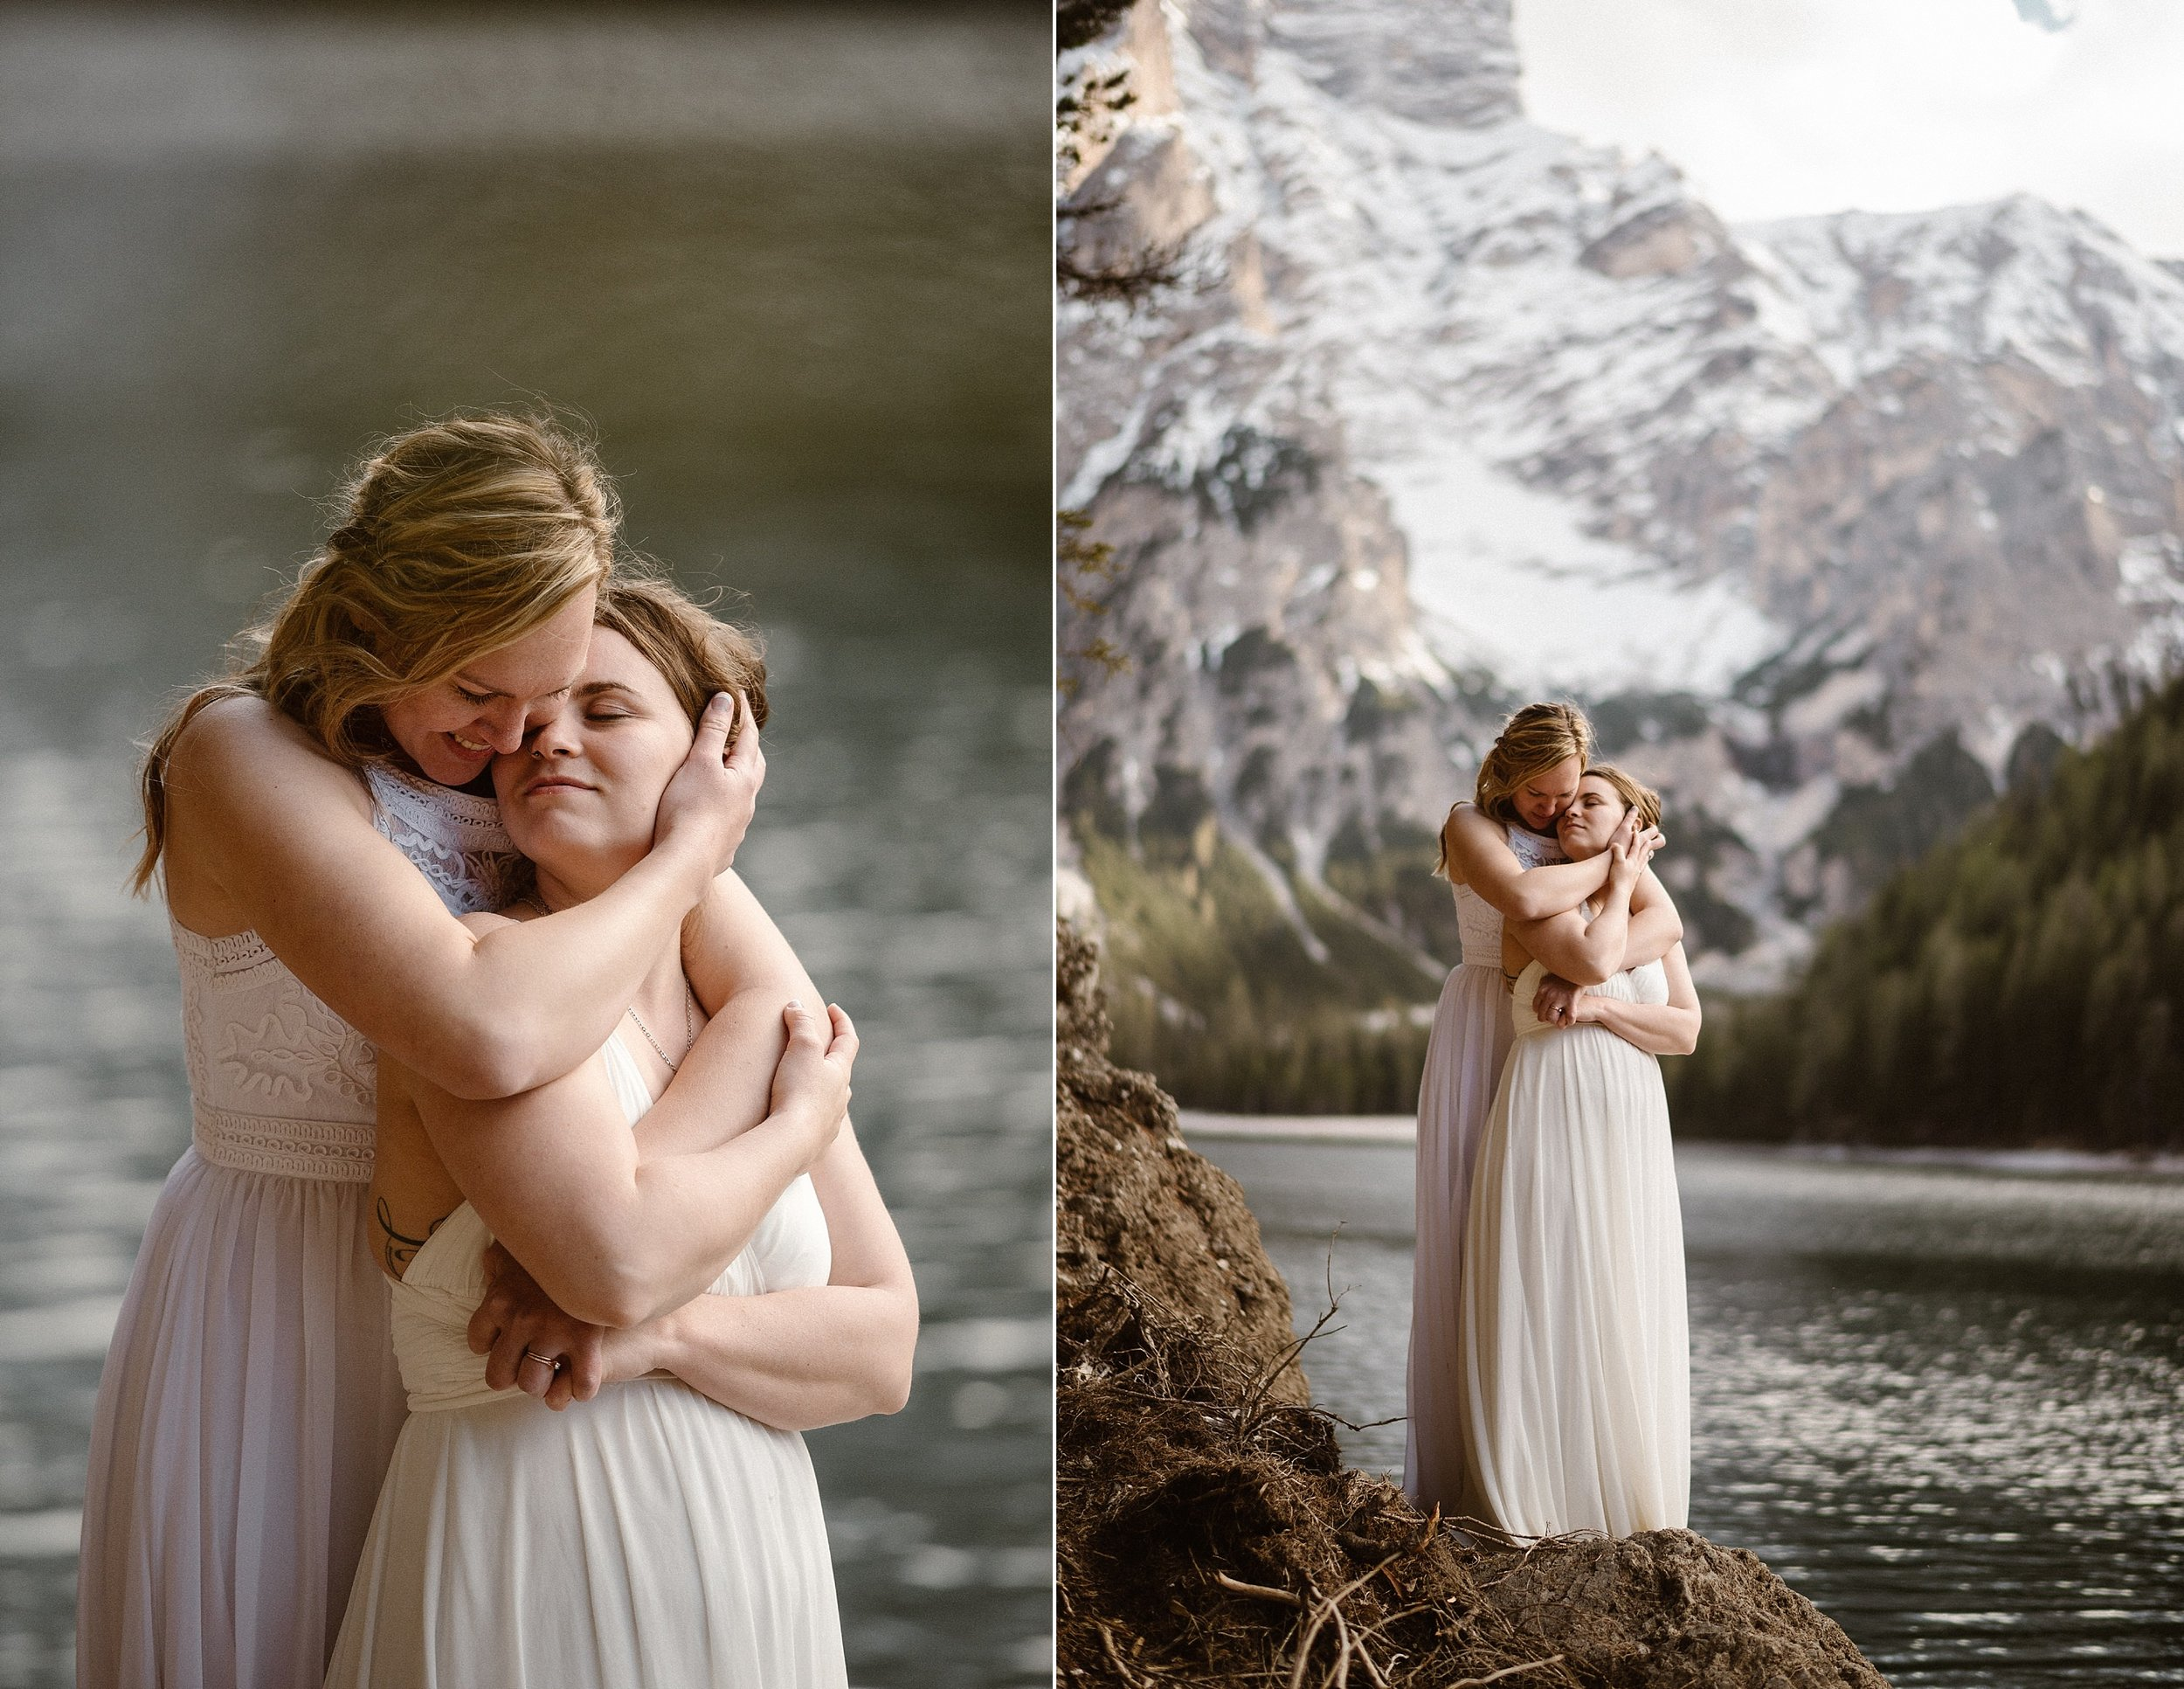 With the sun shining brightly they spent their first few minutes of married life walking along the water of Lake Braise with the Italian Dolomites in front of them. This intimate elopement captured by traveling wedding photographer Maddie Mae.